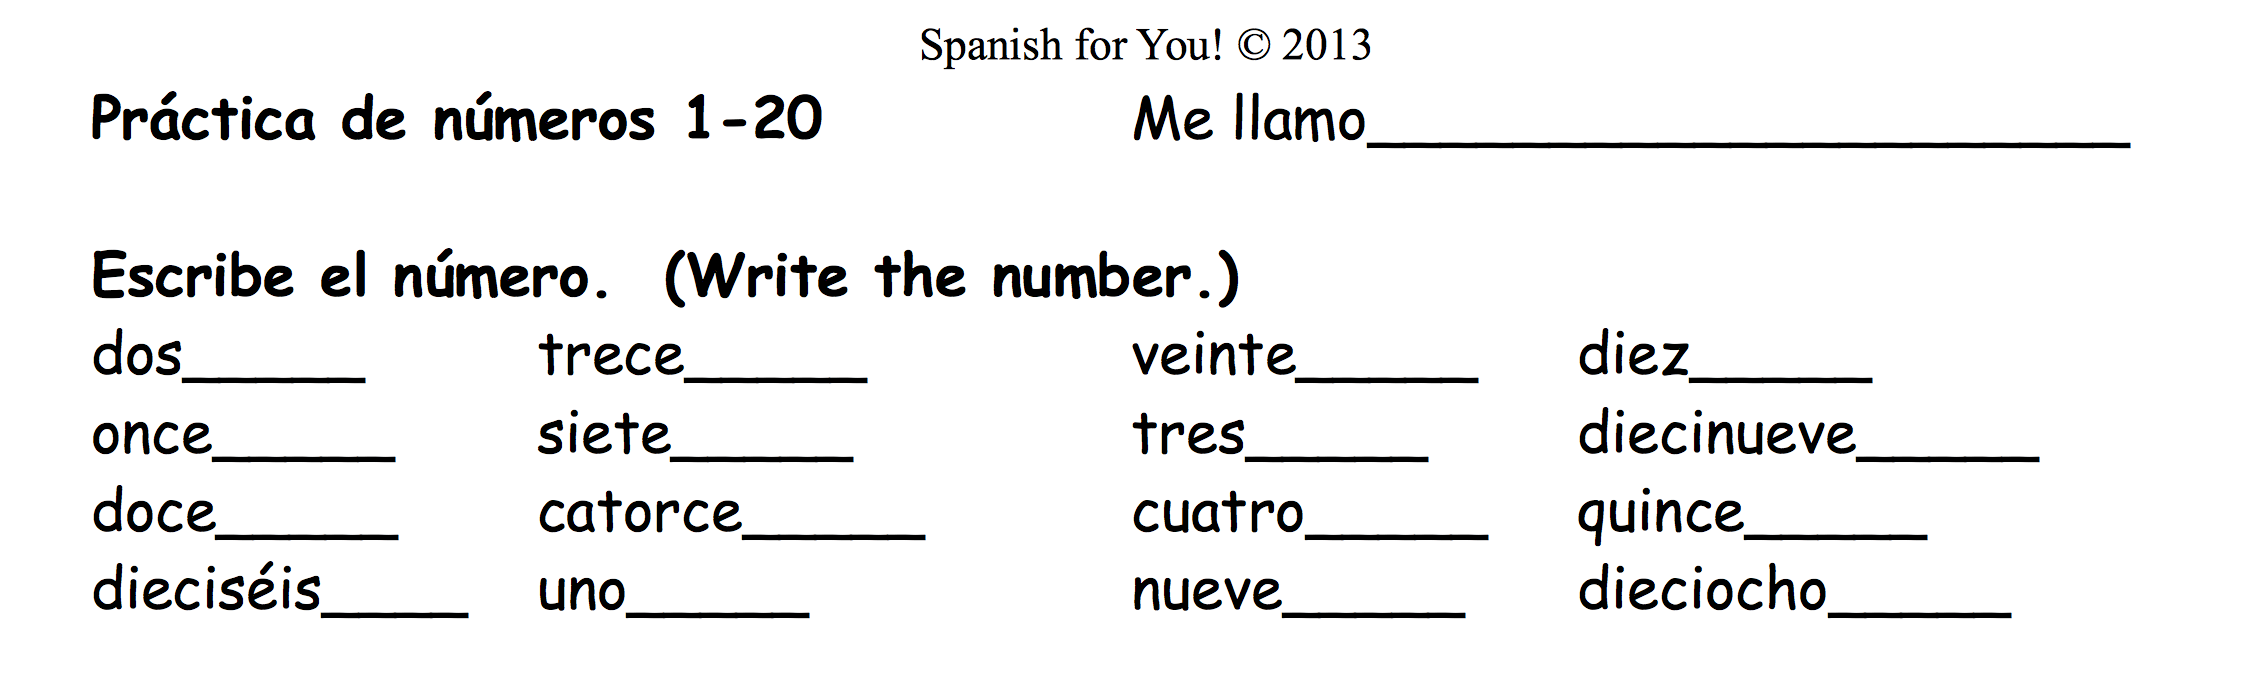 worksheet. Spanish Practice Worksheets. Grass Fedjp Worksheet ...